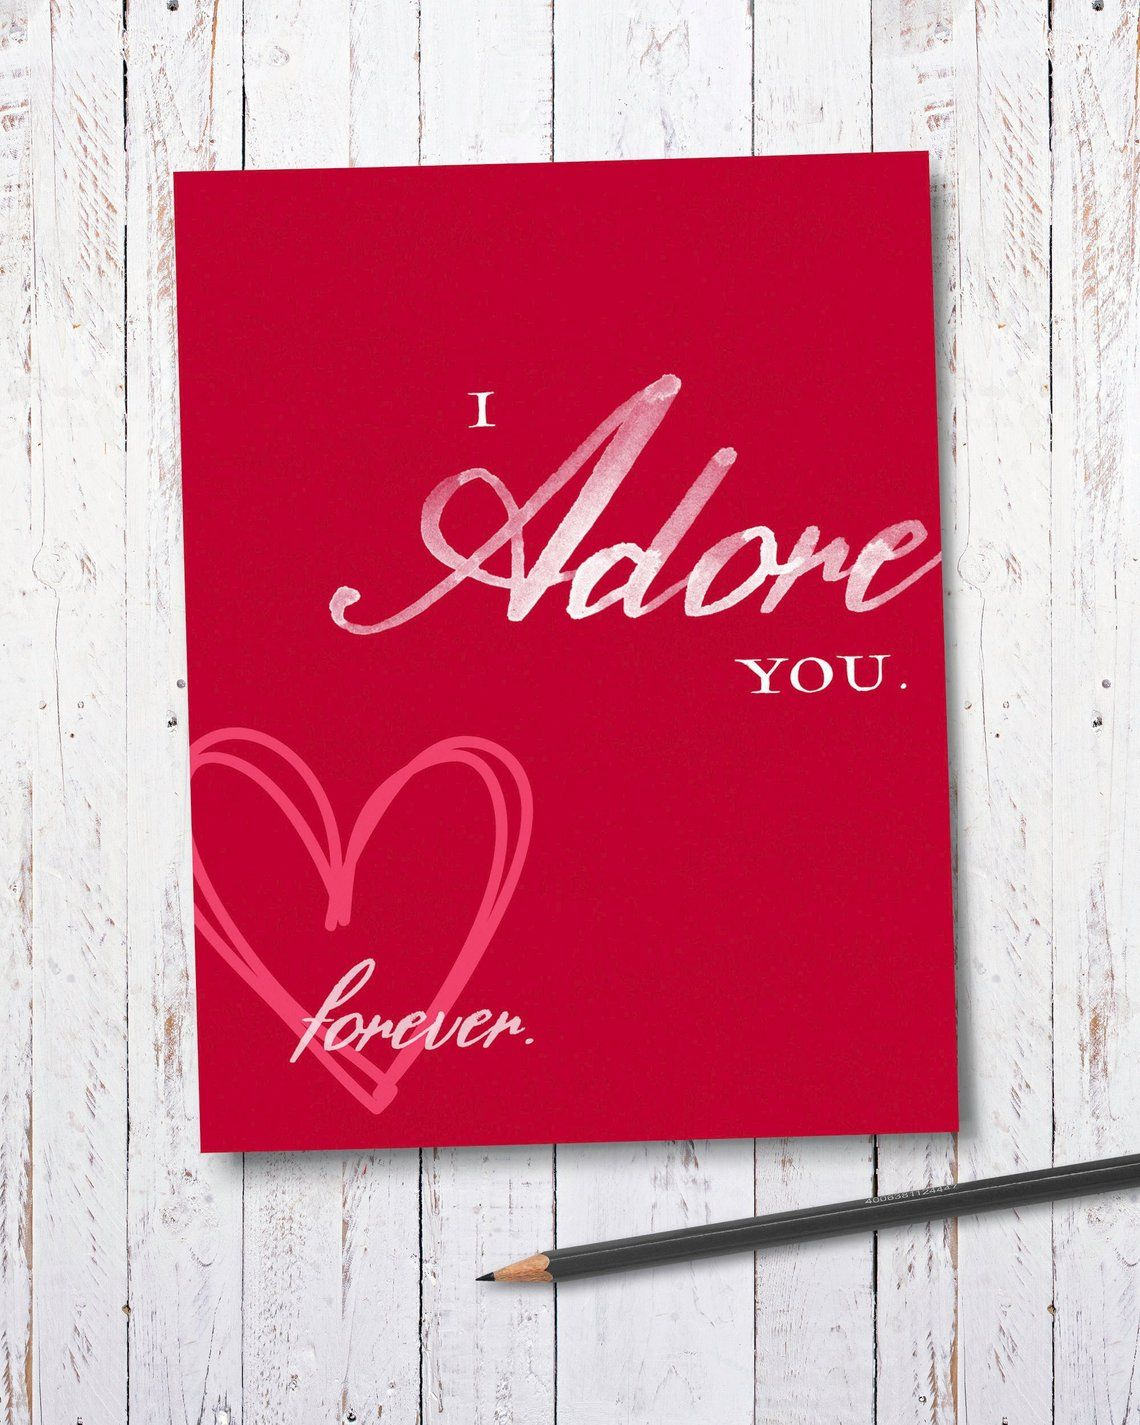 I adore you valentines card for her valentines day card